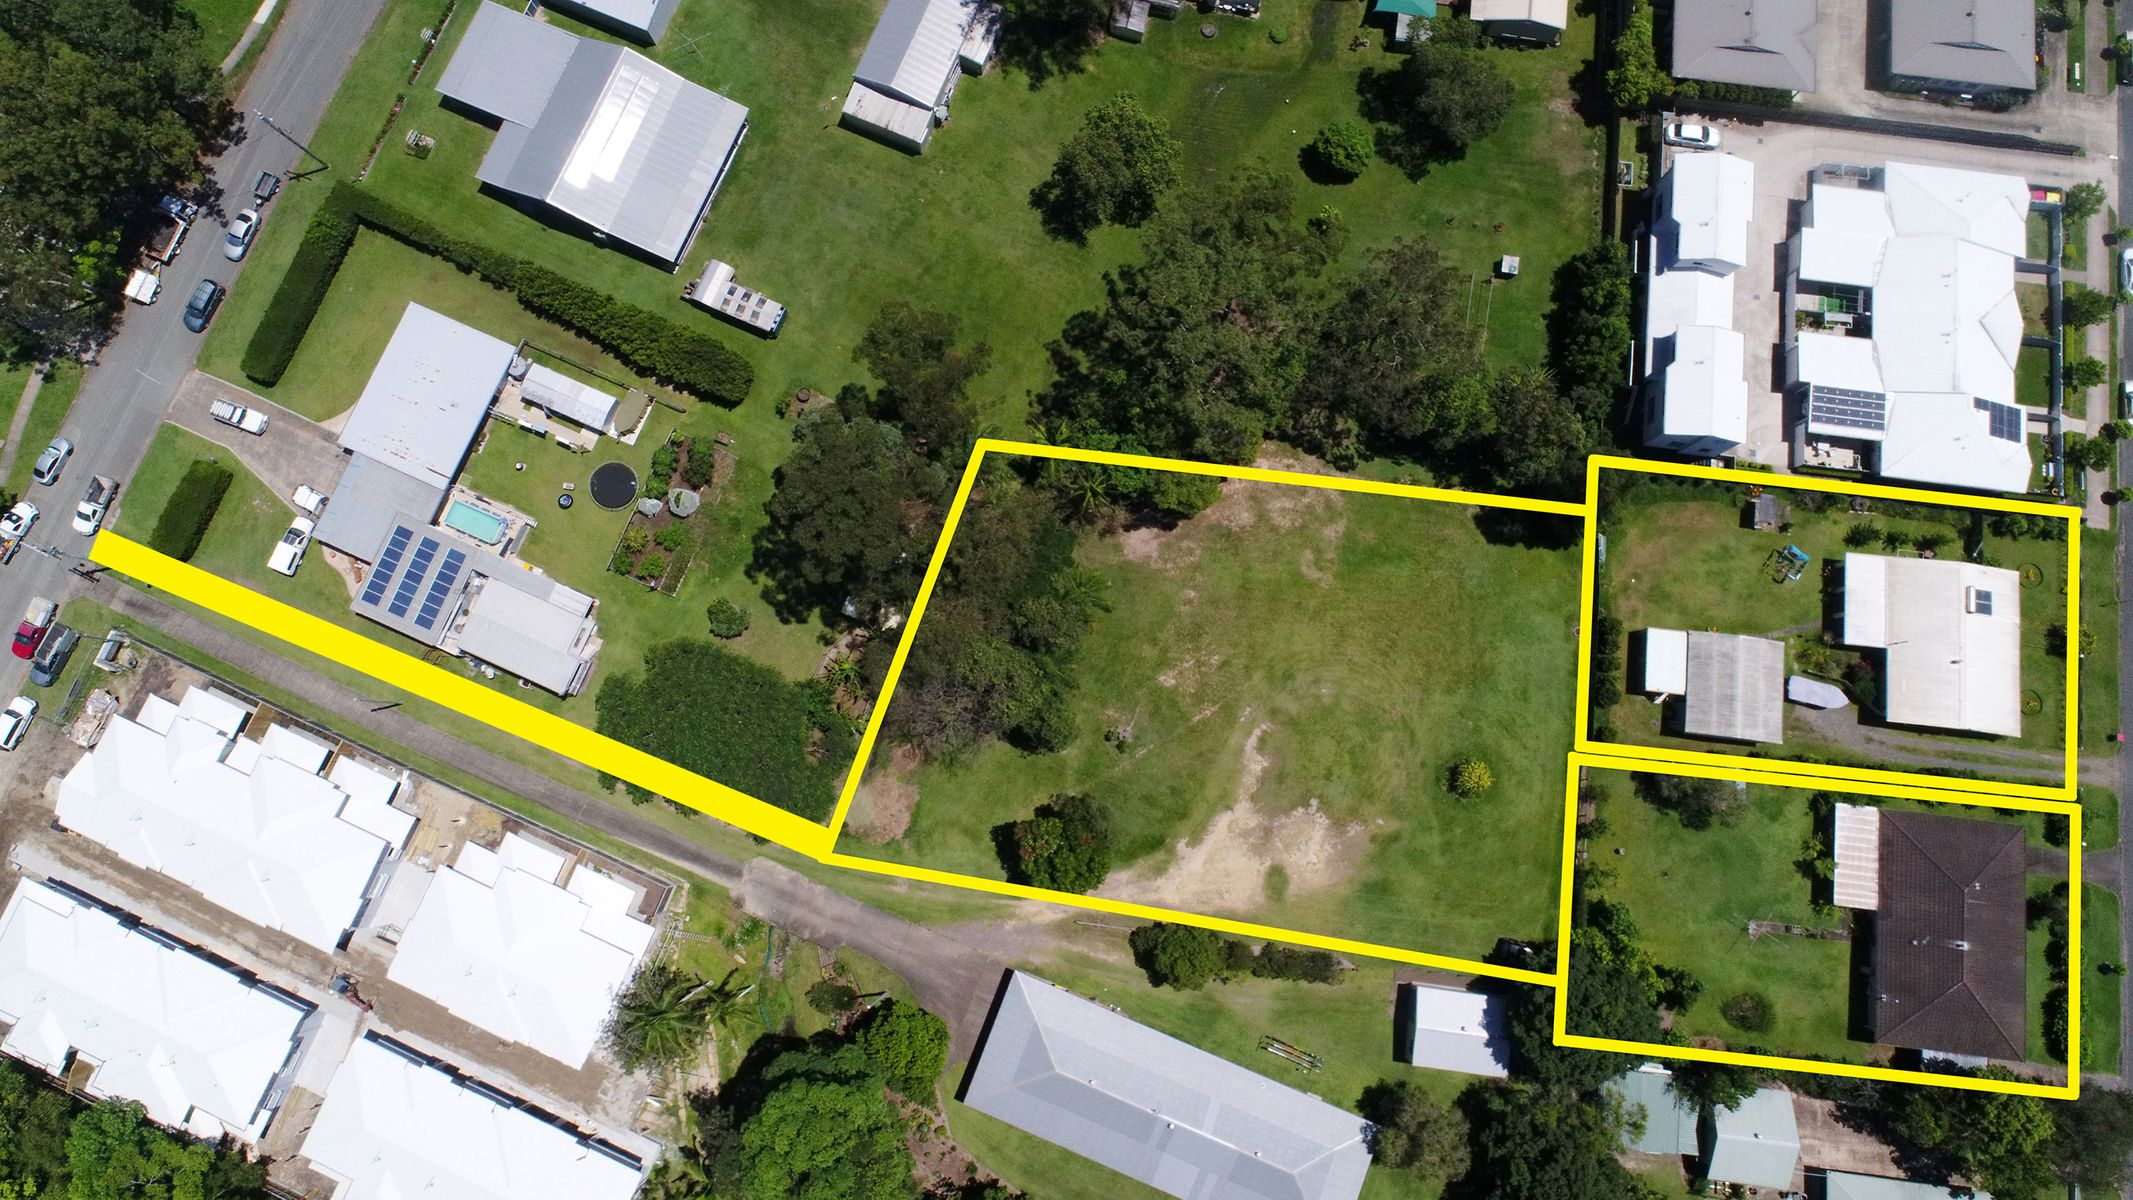 Lot 24, 8 & 10 Gympie St North, Landsborough, QLD 4550